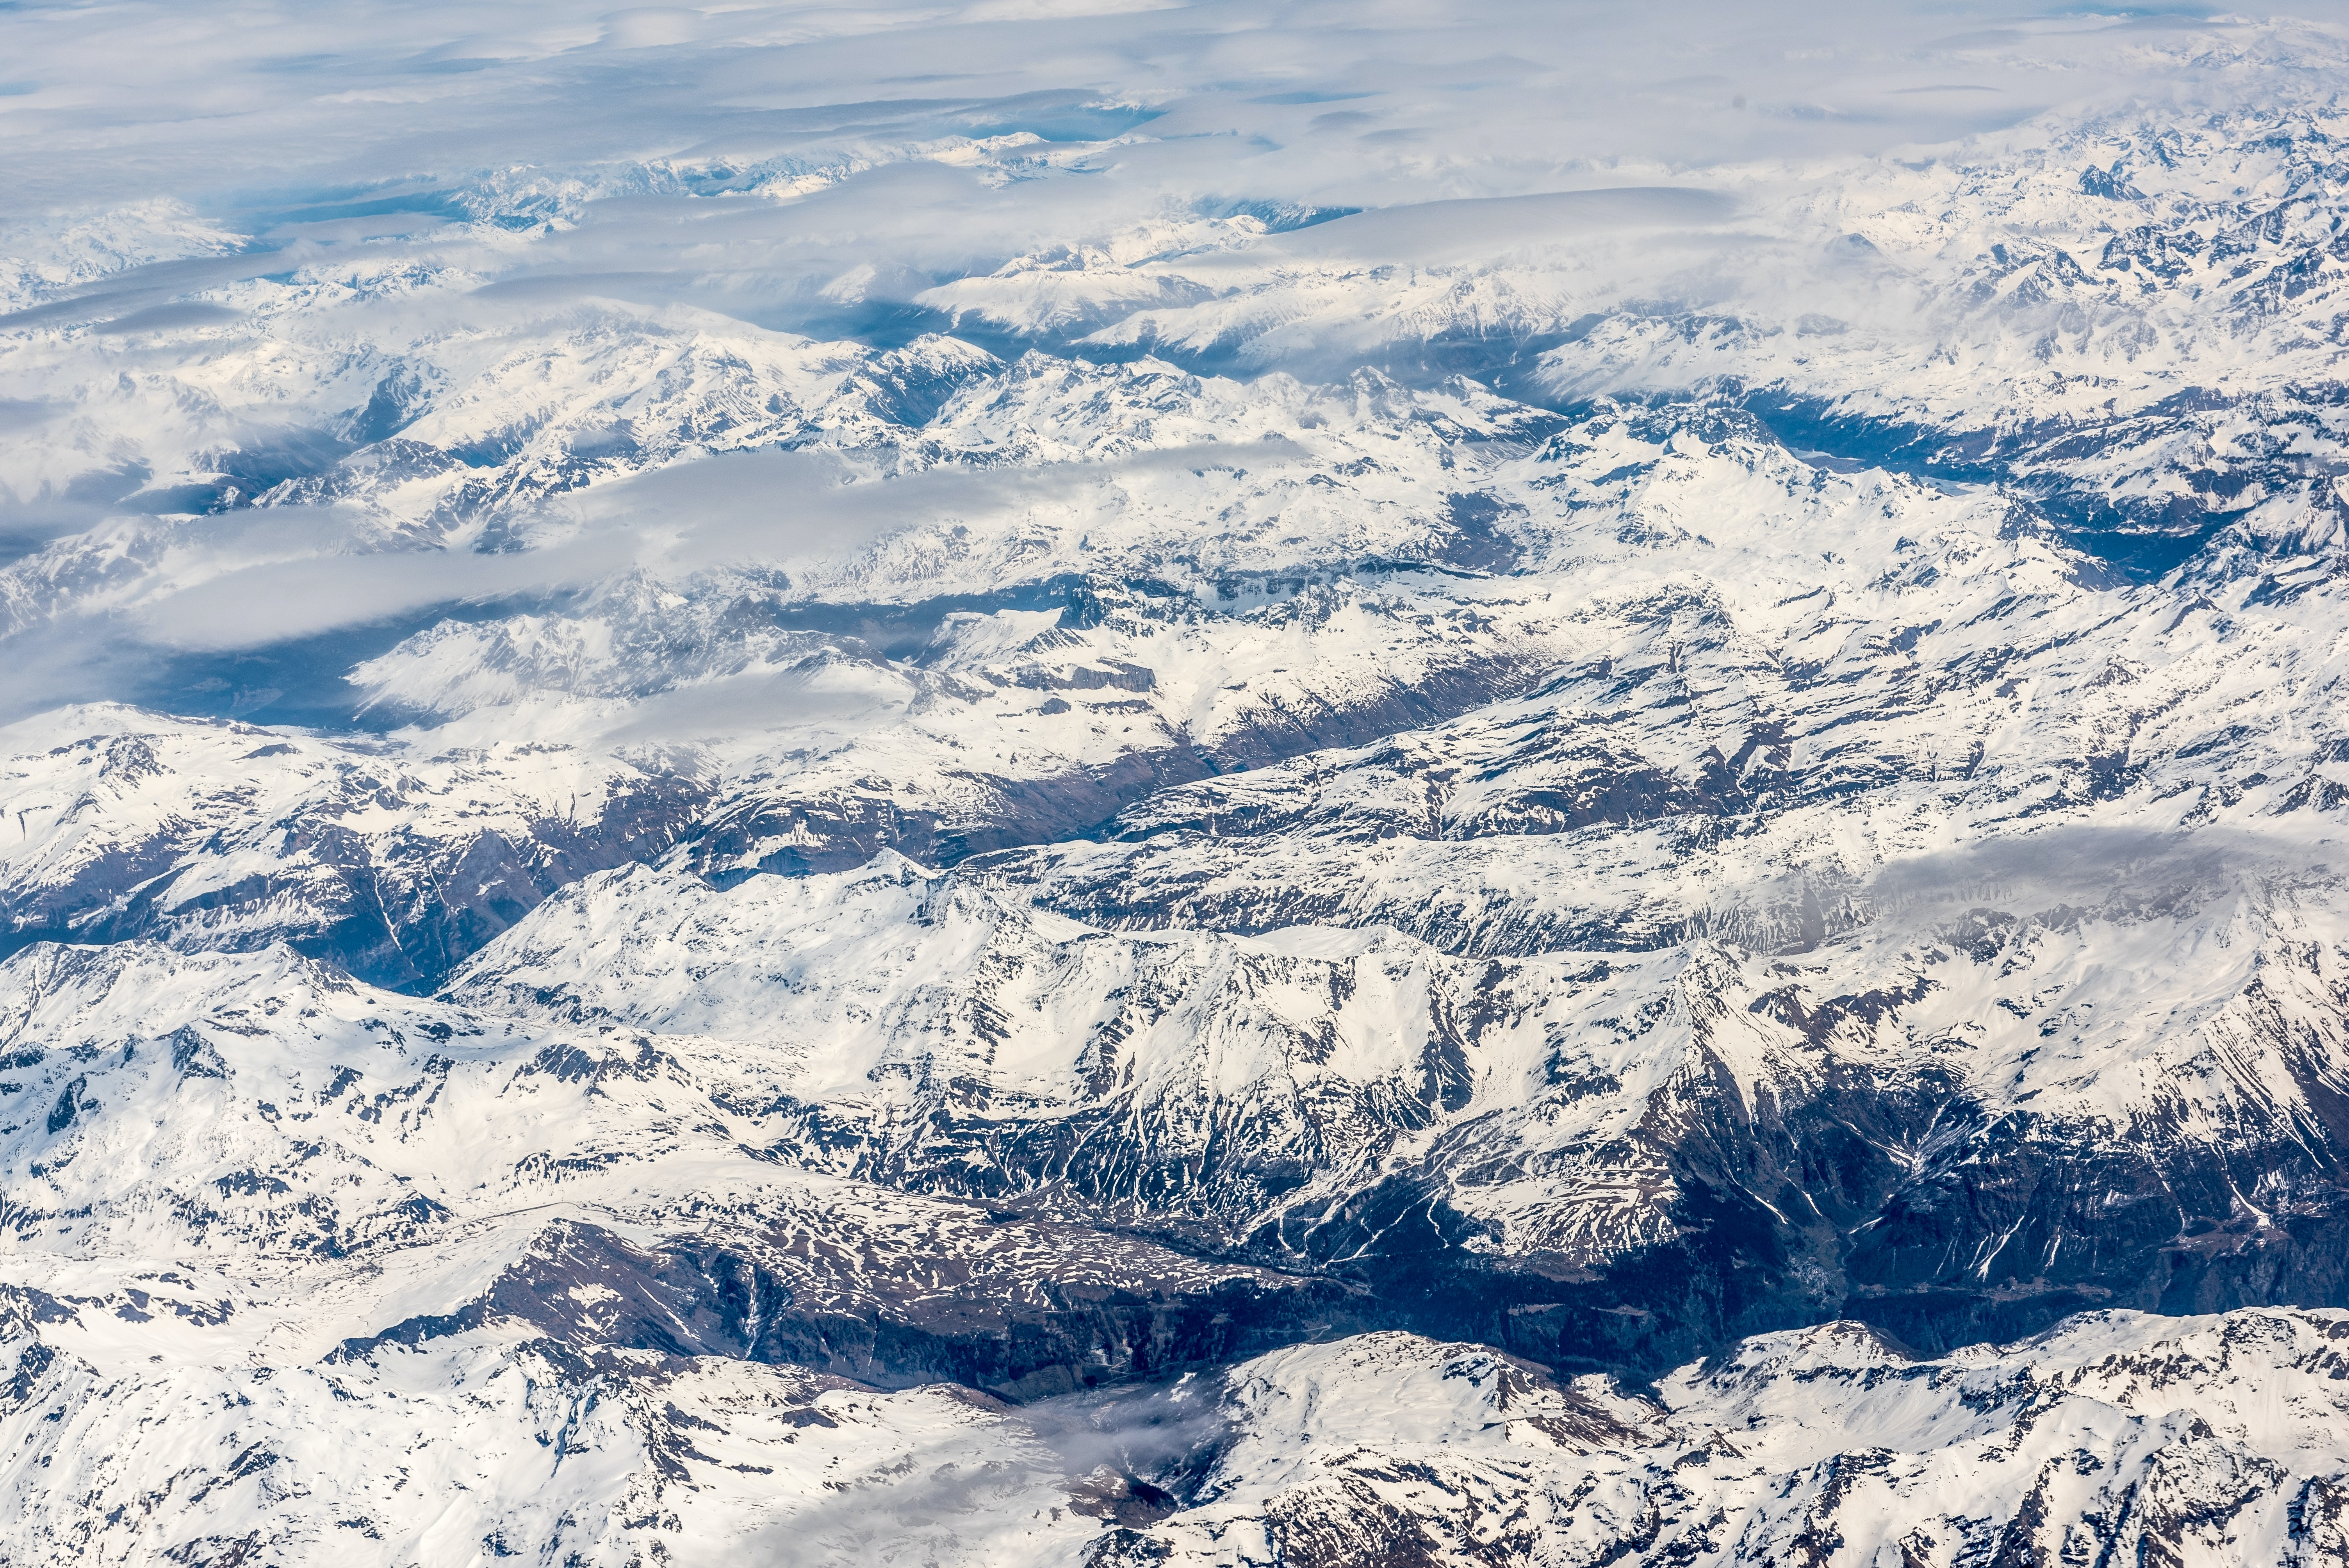 An aerial shot of a snowy mountain range under patchy clouds